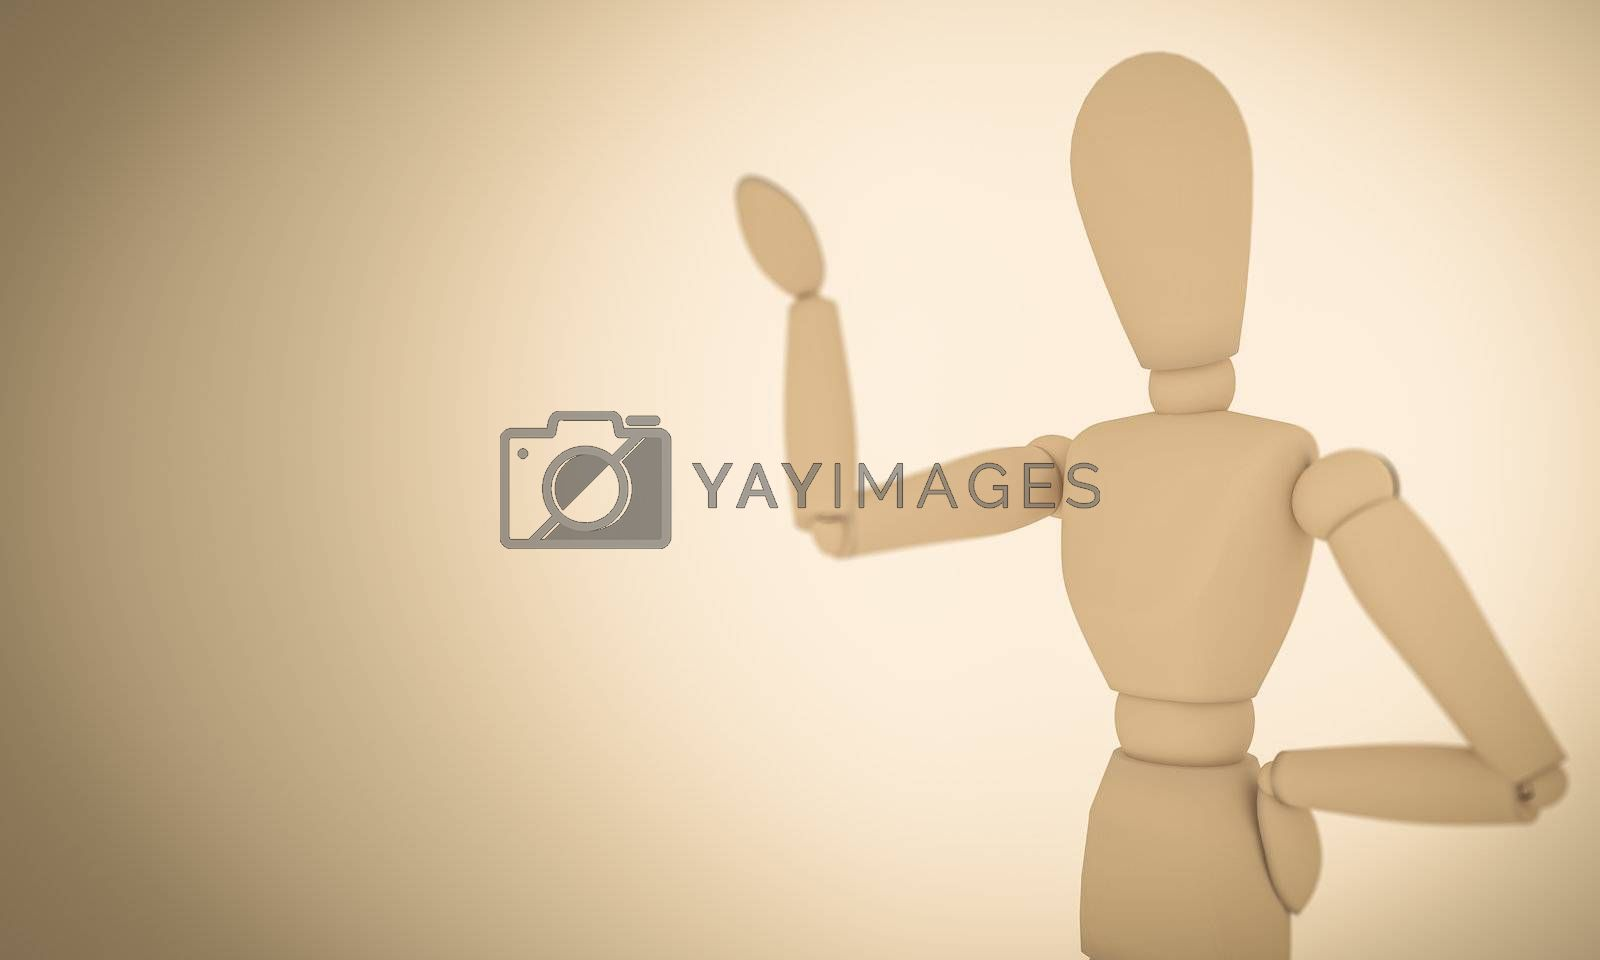 A CGI image of a wooden mannequin posing on a light brown background.